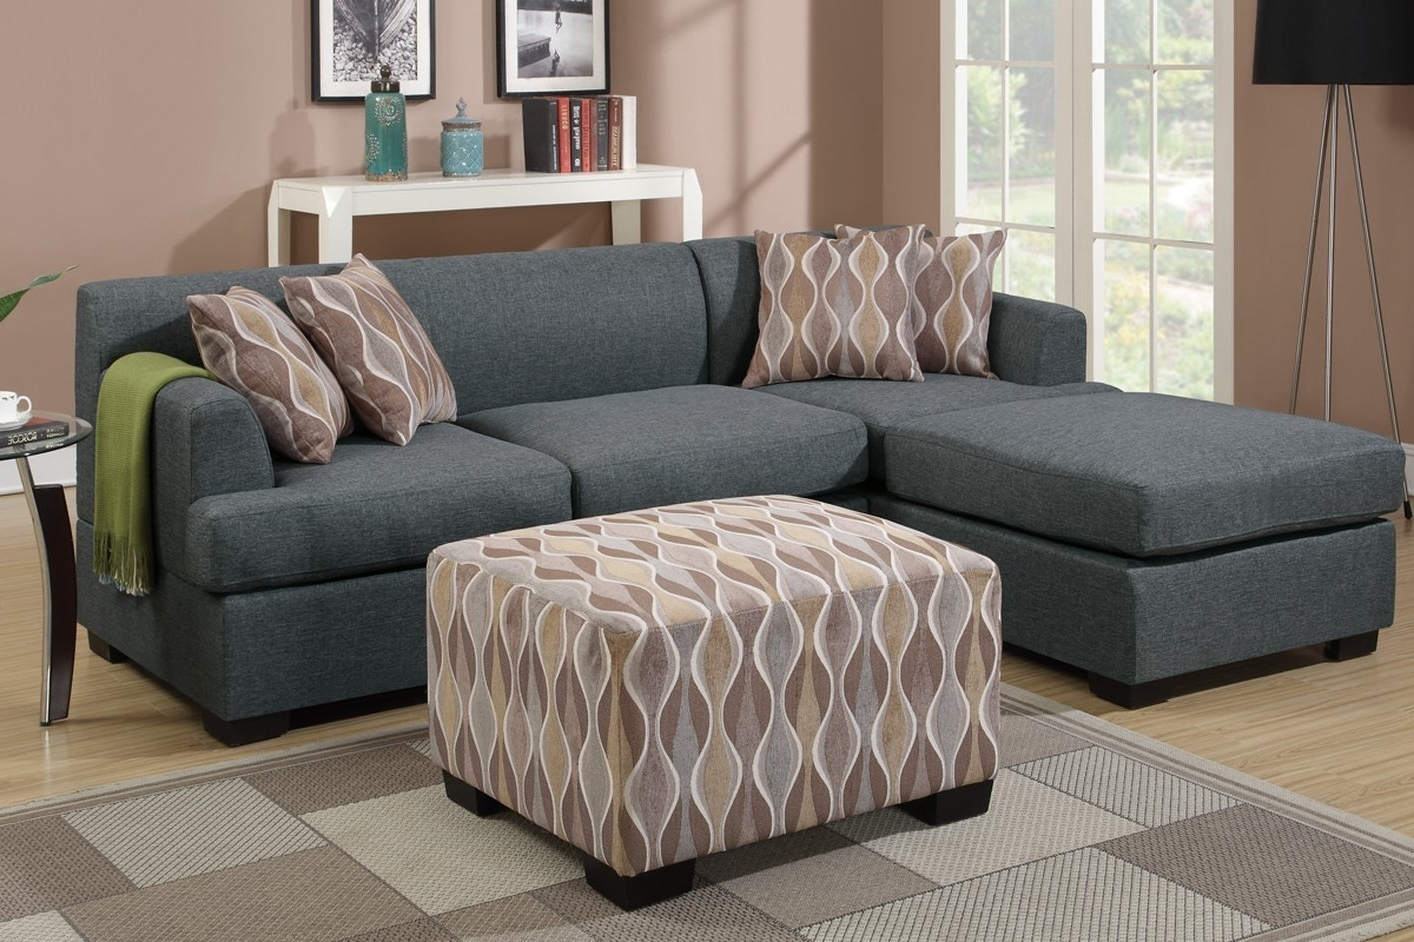 Grey Fabric Chaise Lounge – Steal A Sofa Furniture Outlet Los With Regard To Newest Fabric Chaise Lounges (View 8 of 15)